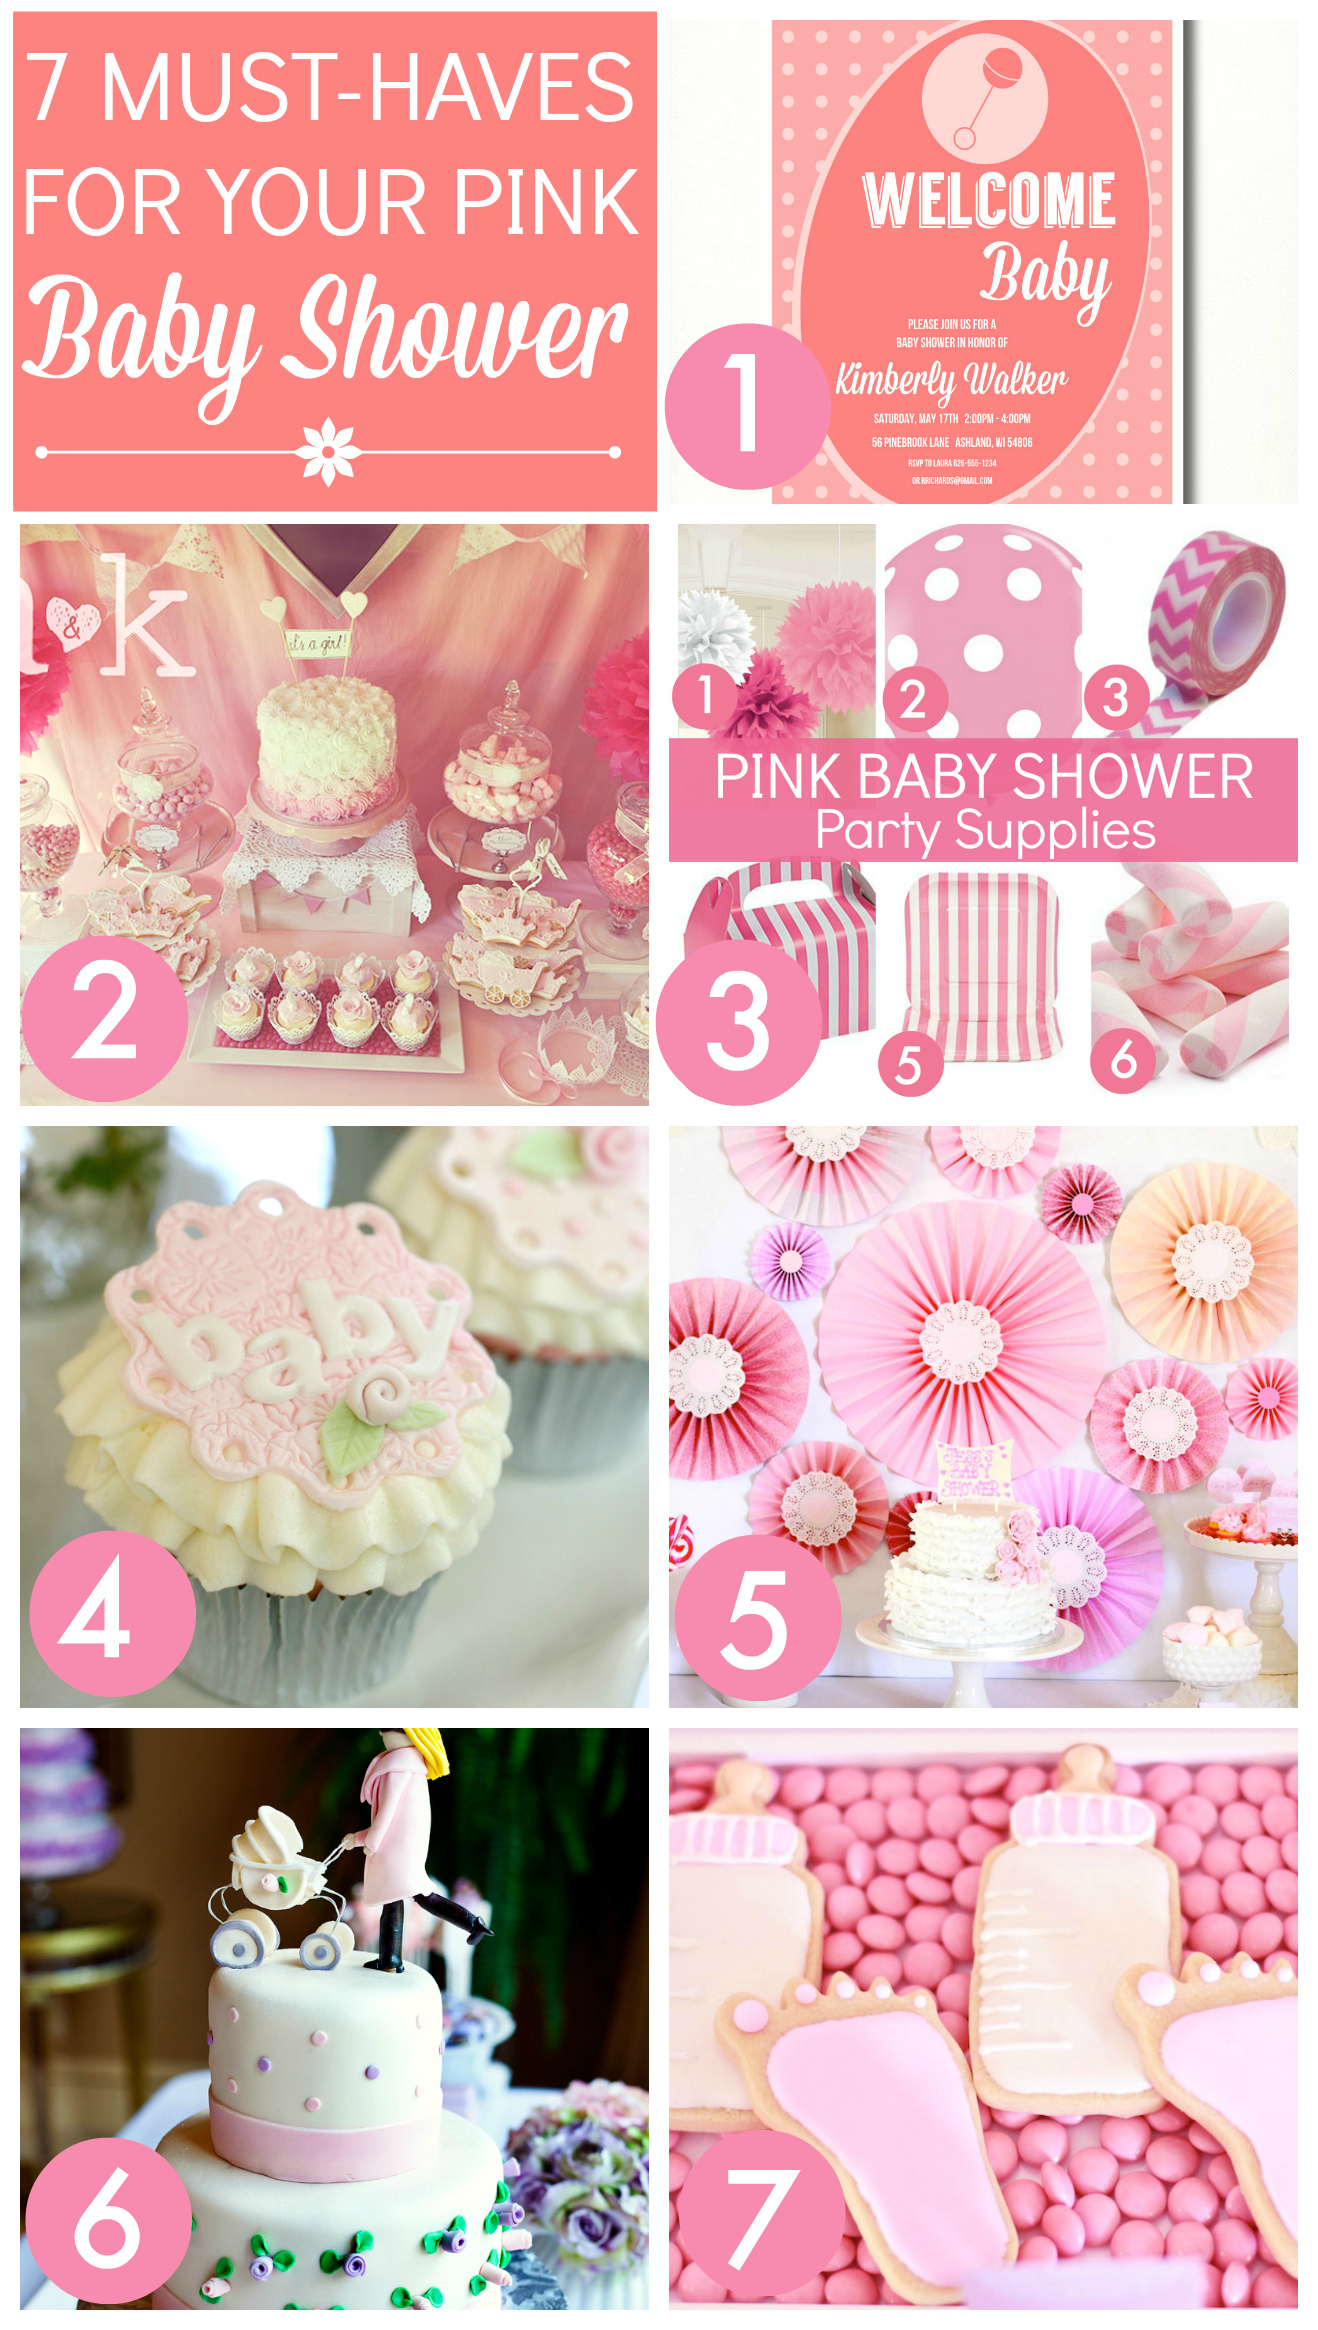 pink baby shower ideas  catch my party, Baby shower